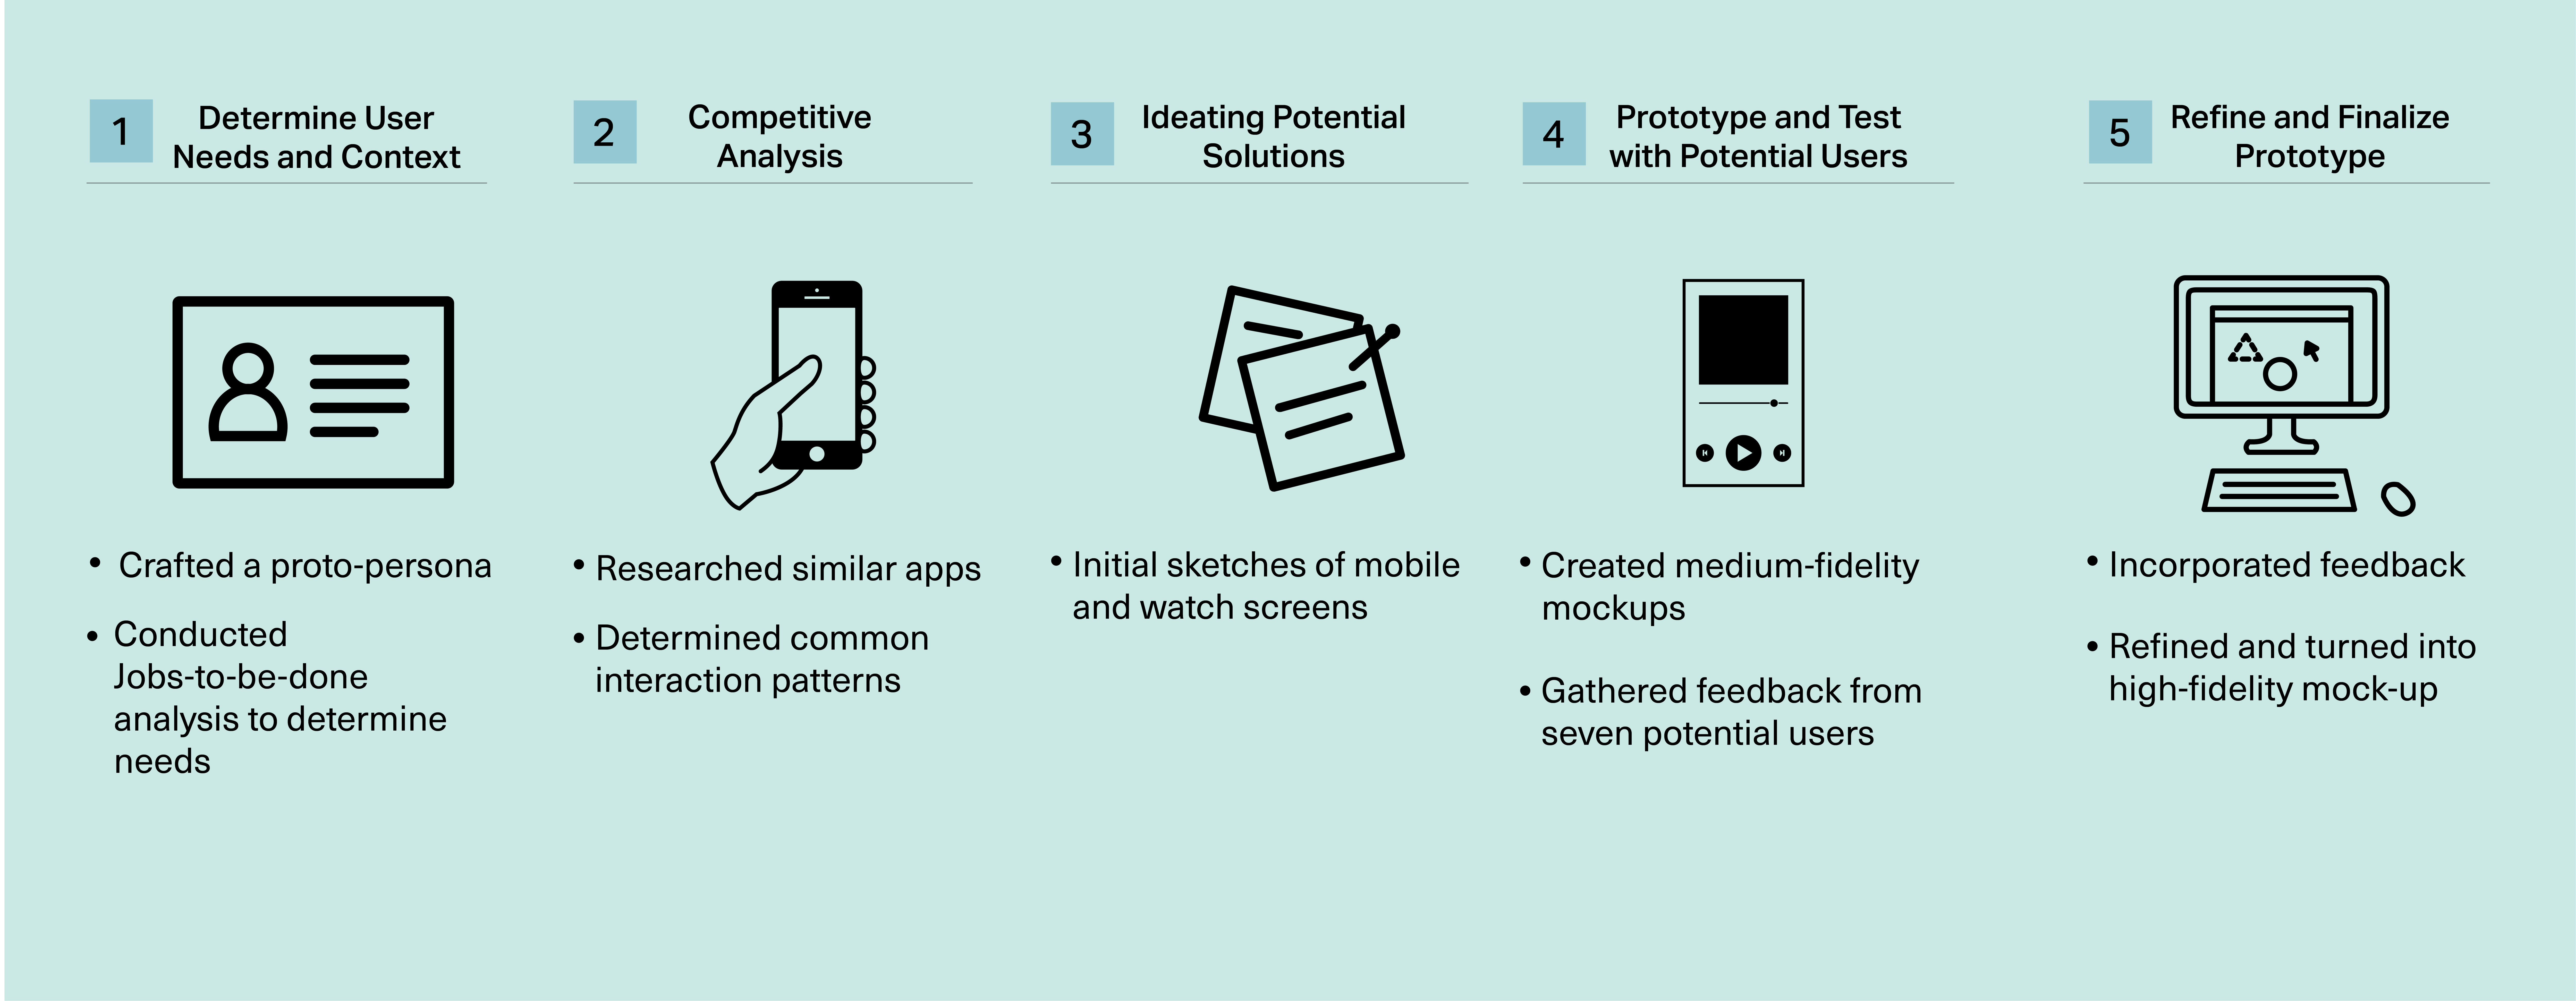 An infographic detailing the specifics of the design process, from scoing the problem, to doing the initial customer research, card sorting, validating & prototyping, to finally finalizing the prototype.